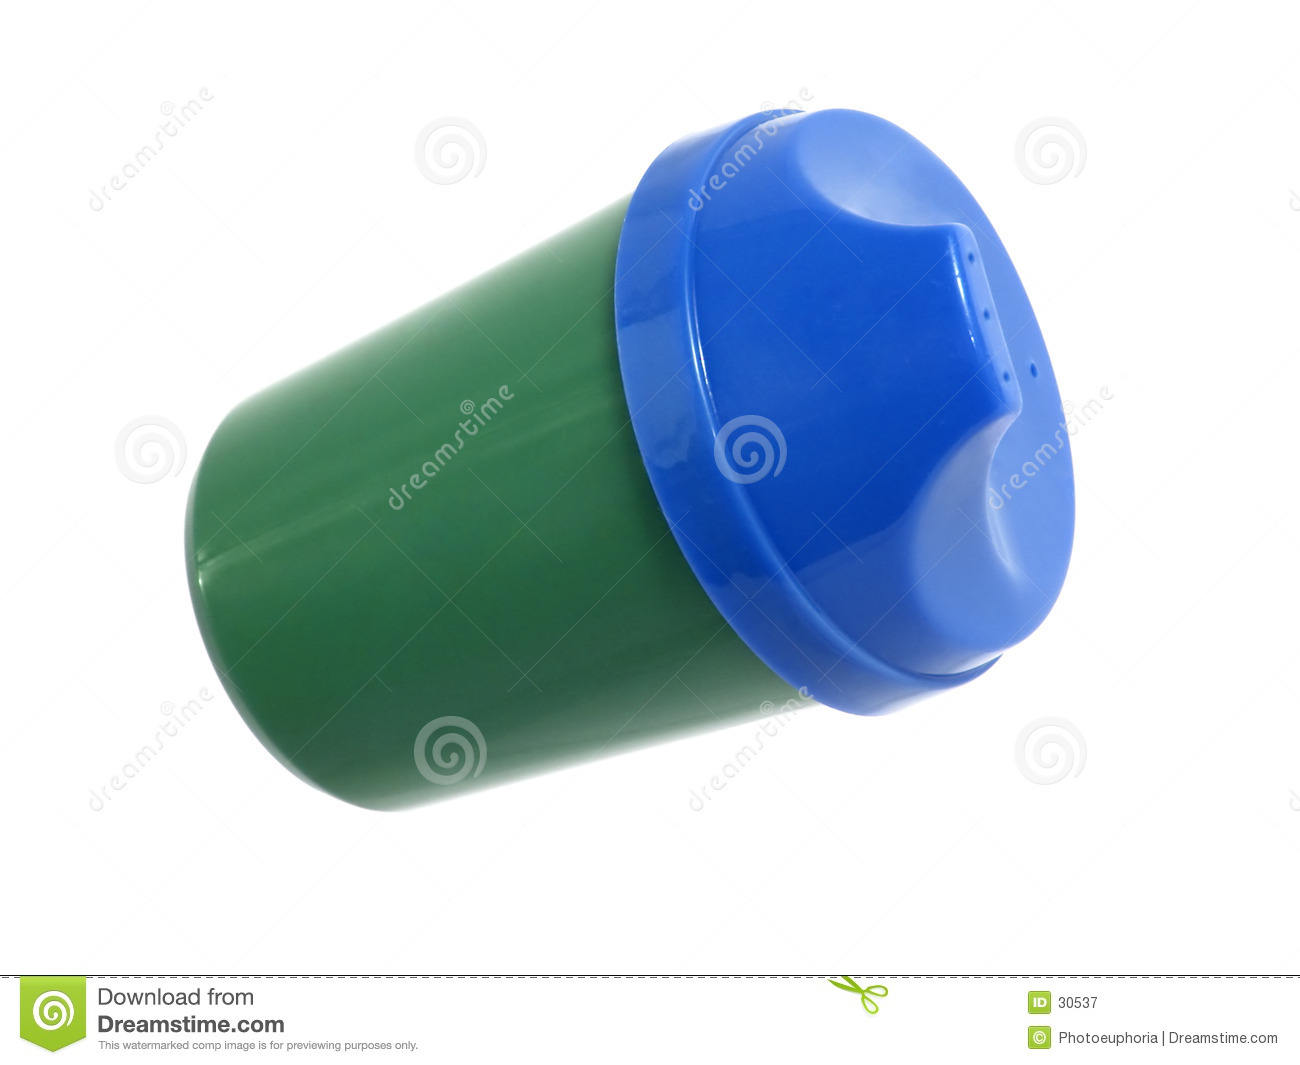 Household Items: Blue and Green Toddler Cup